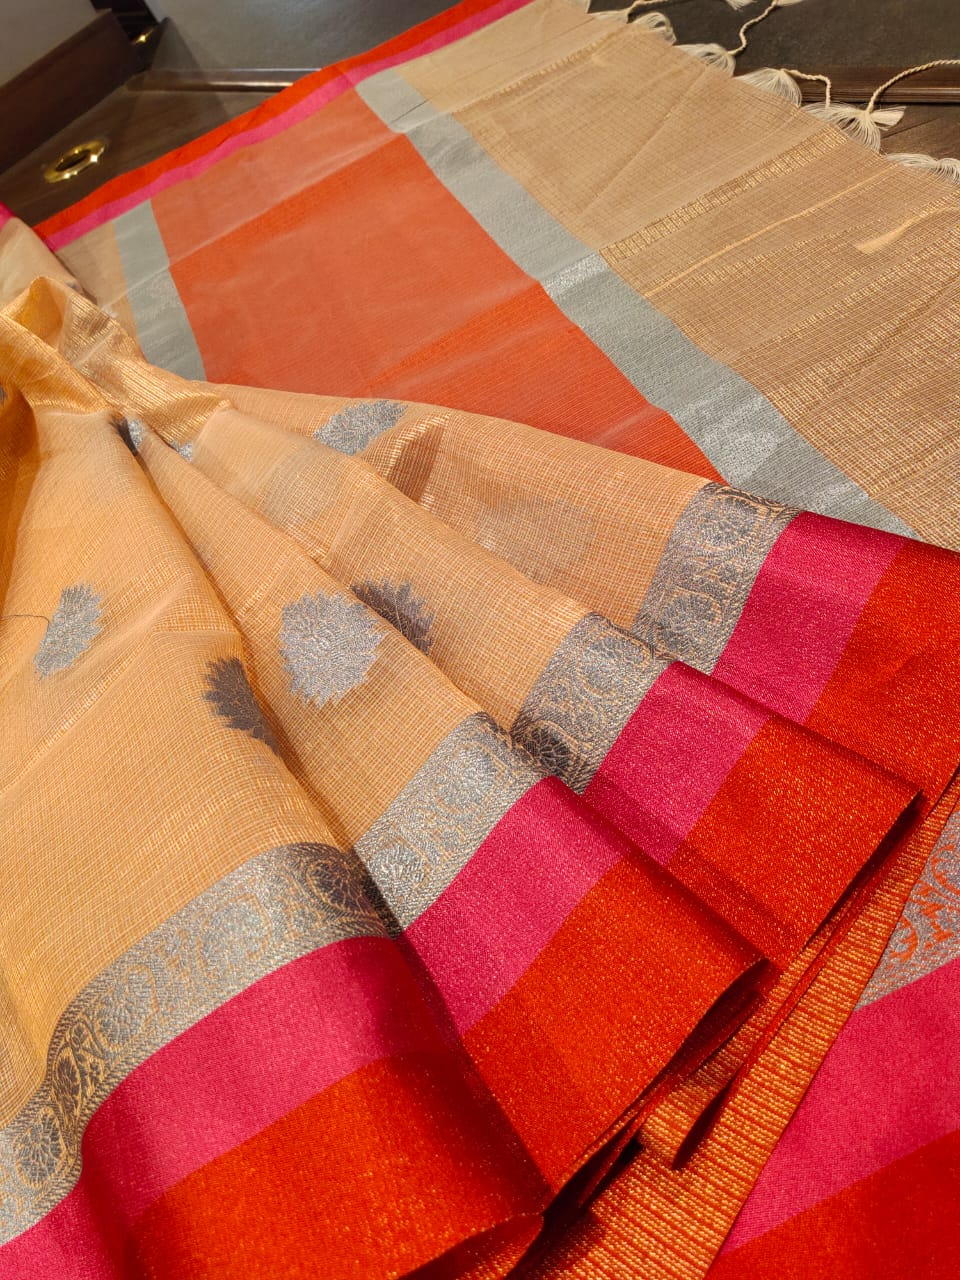 Light orange kota saree with silver,orange and pink border and silver booties all over